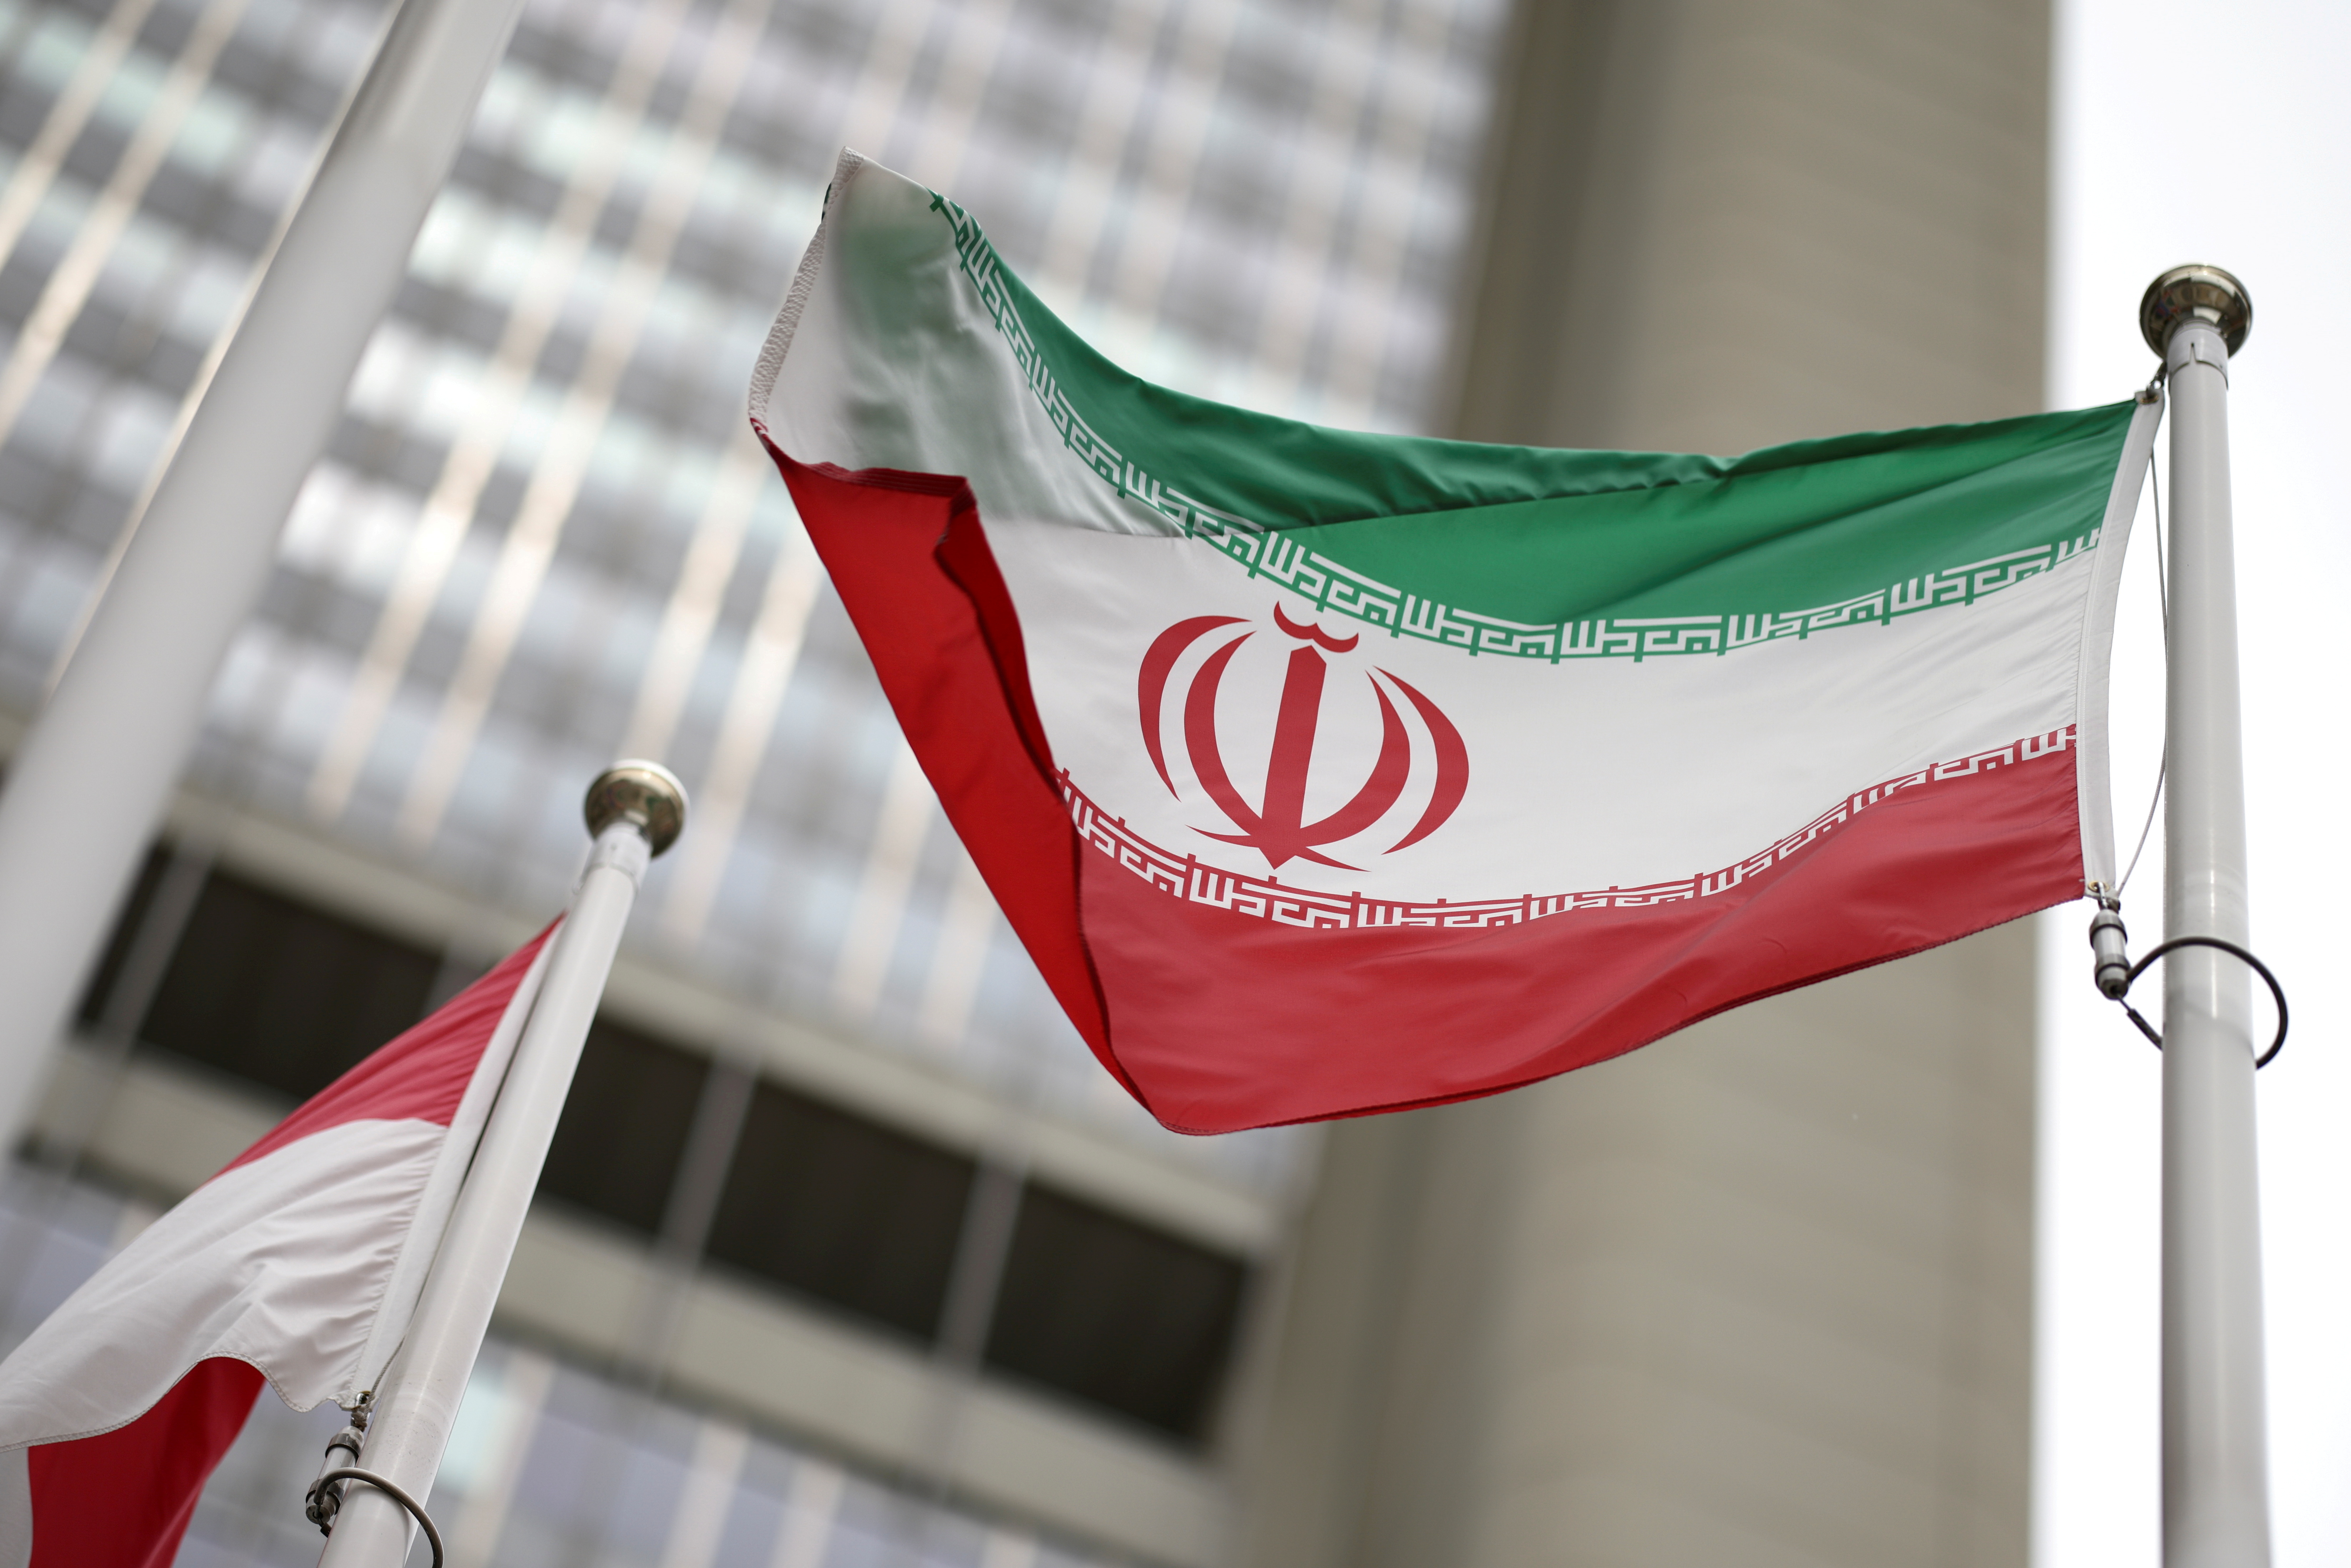 Iranian flag flies in front of the UN office building, housing IAEA headquarters, amid the coronavirus disease (COVID-19) pandemic, in Vienna, Austria, May 24, 2021. REUTERS/Lisi Niesner/File Photo